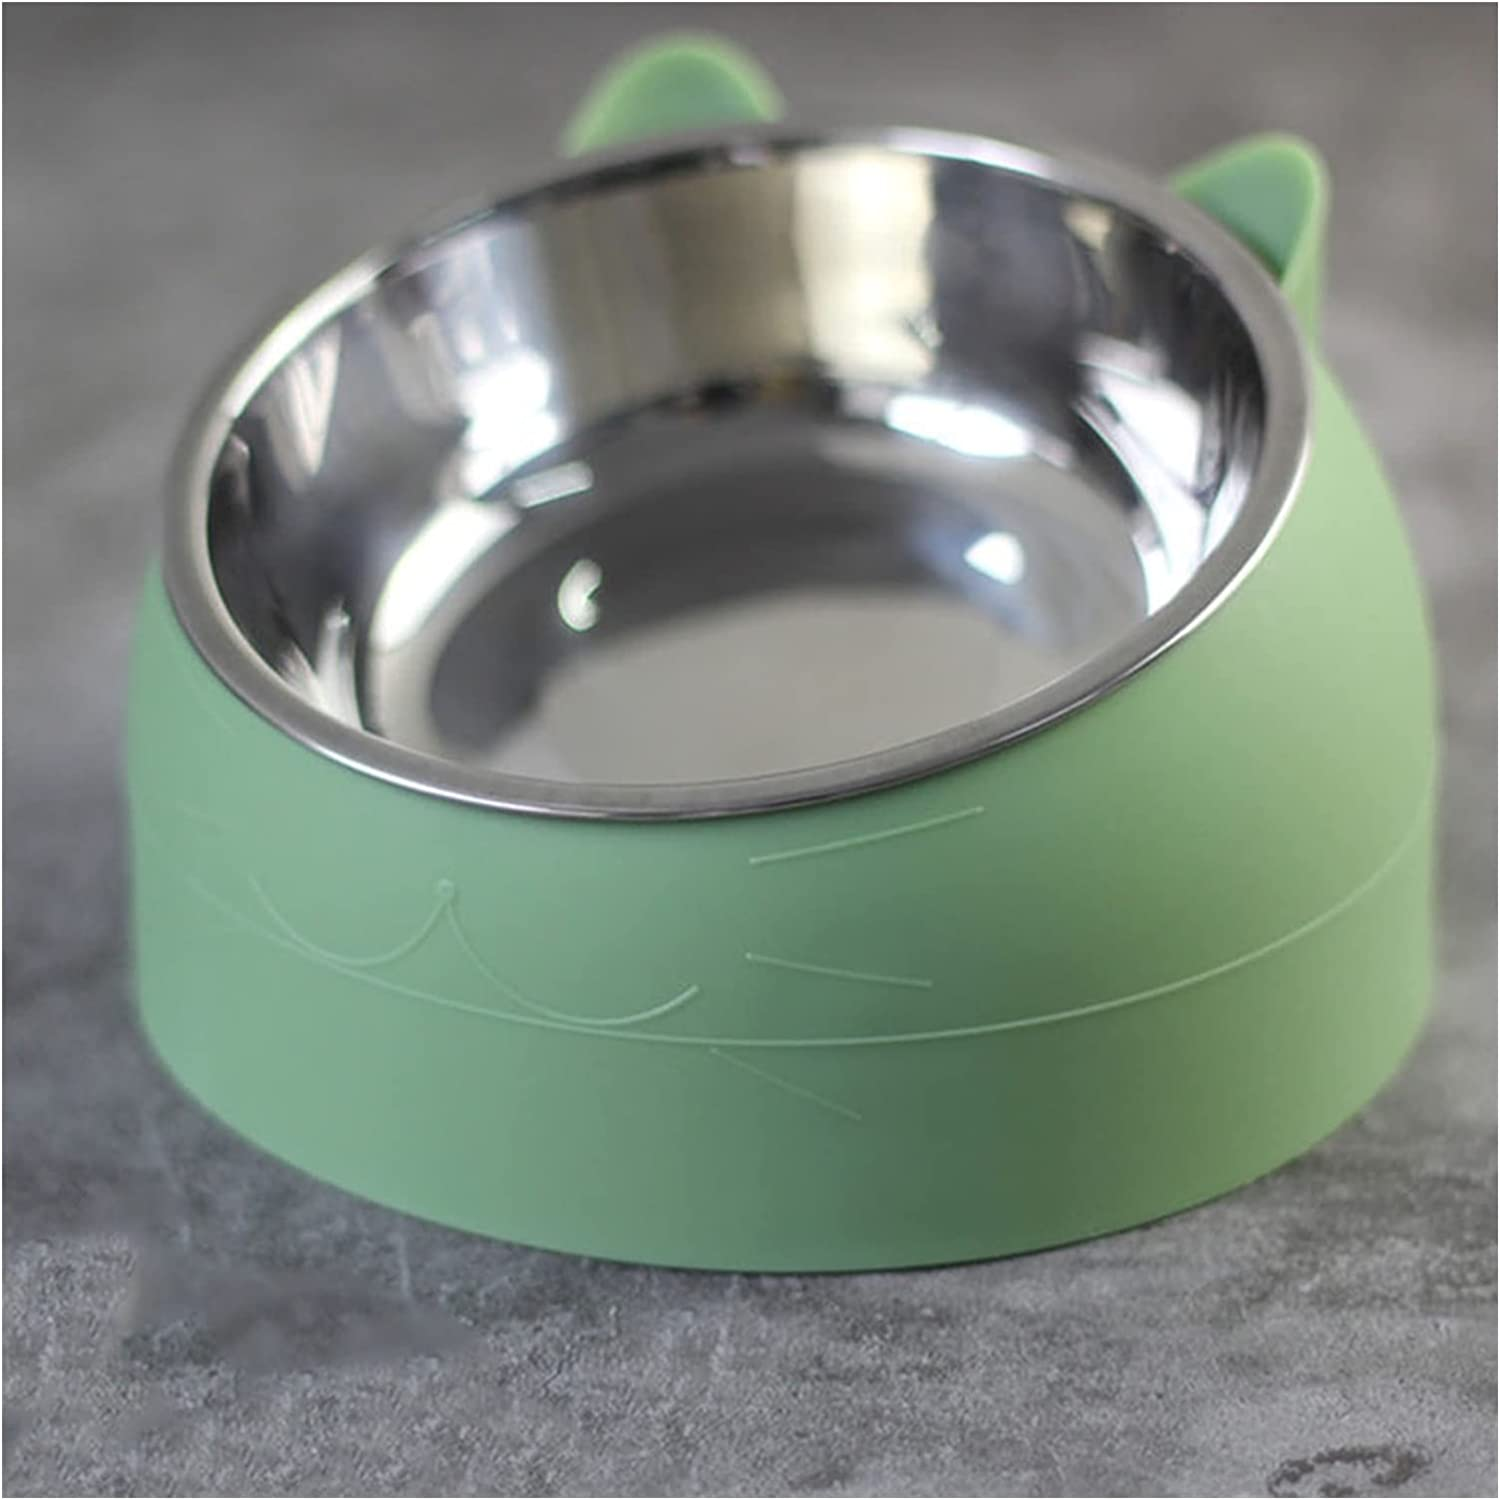 JKXWX Cat Bowl 15 Degrees Bowls Puppy Large-scale sale Raised Stainless Steel Soldering